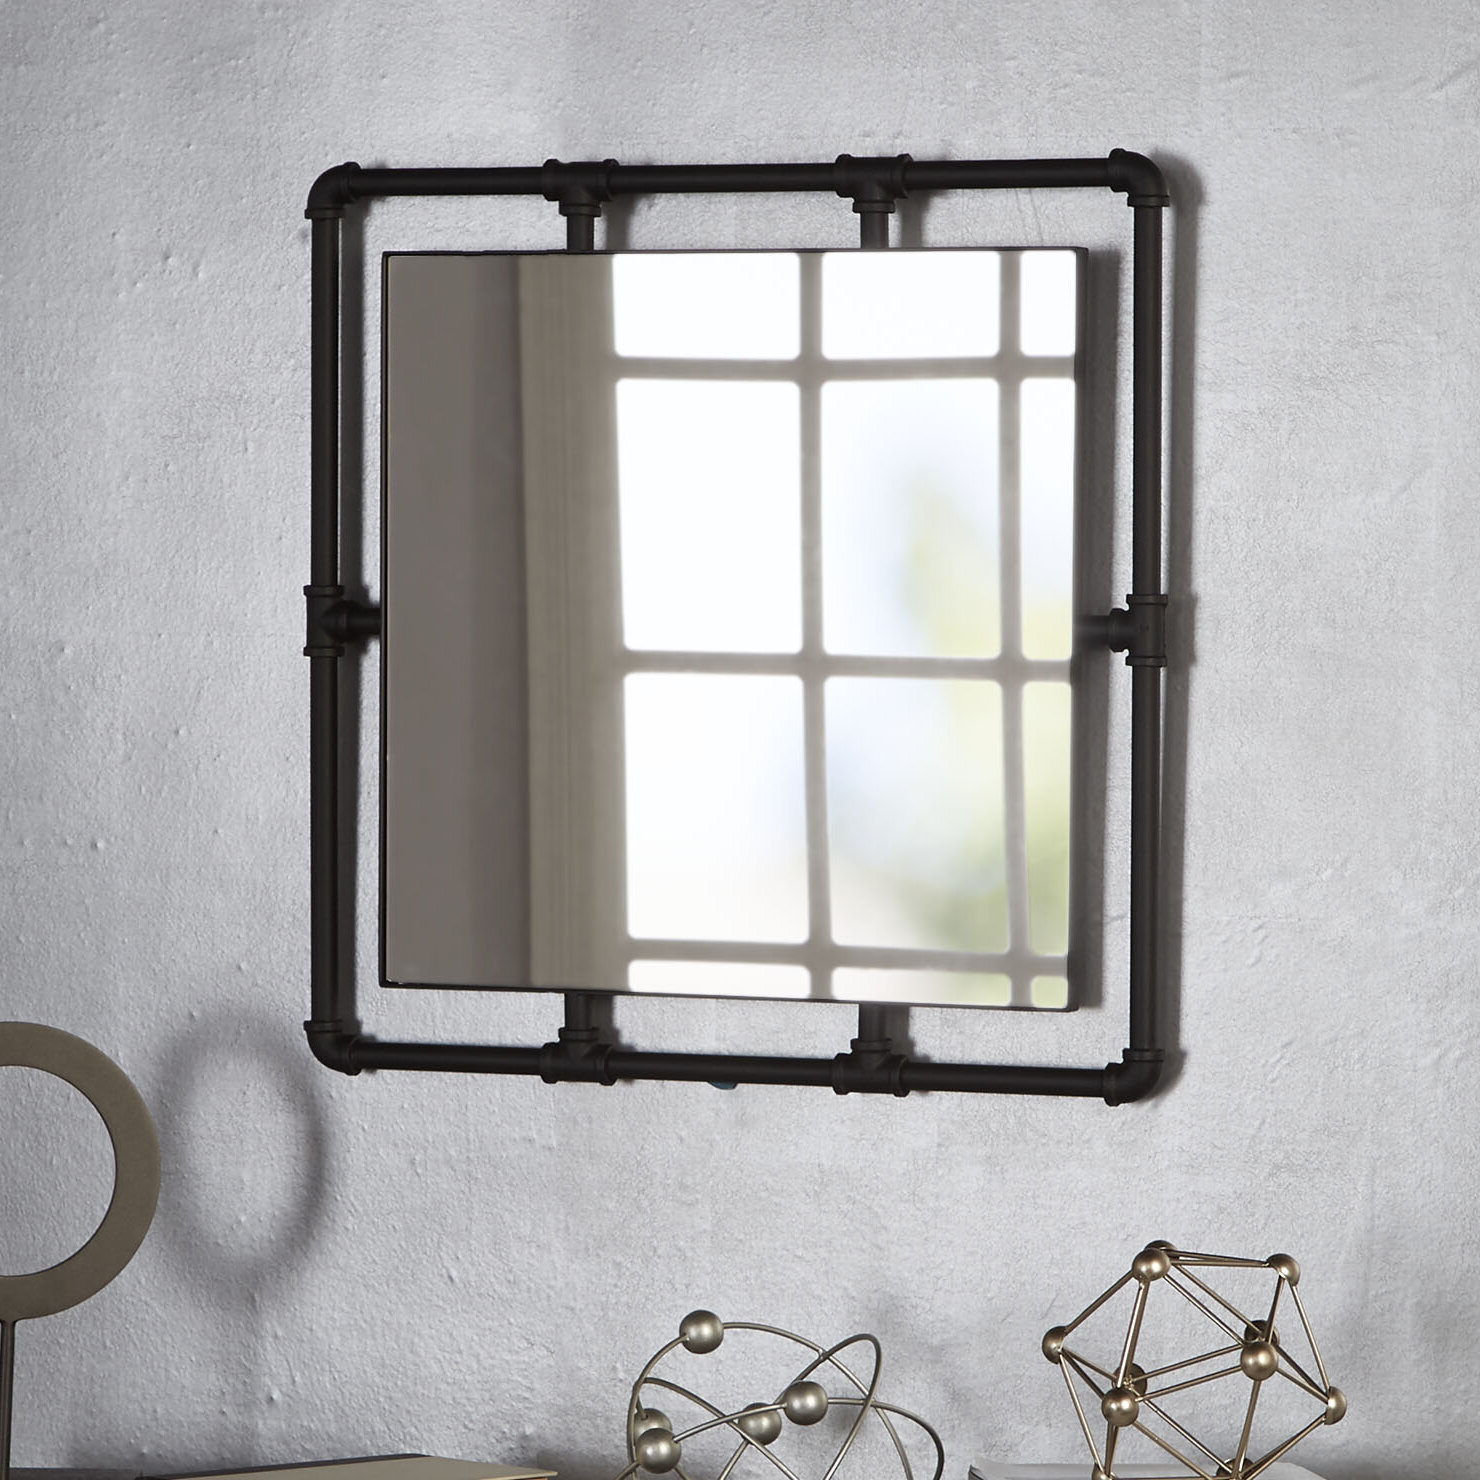 Seltzer Industrial Square Pipe Fitting Accent Mirror Regarding Most Recent Koeller Industrial Metal Wall Mirrors (View 16 of 20)